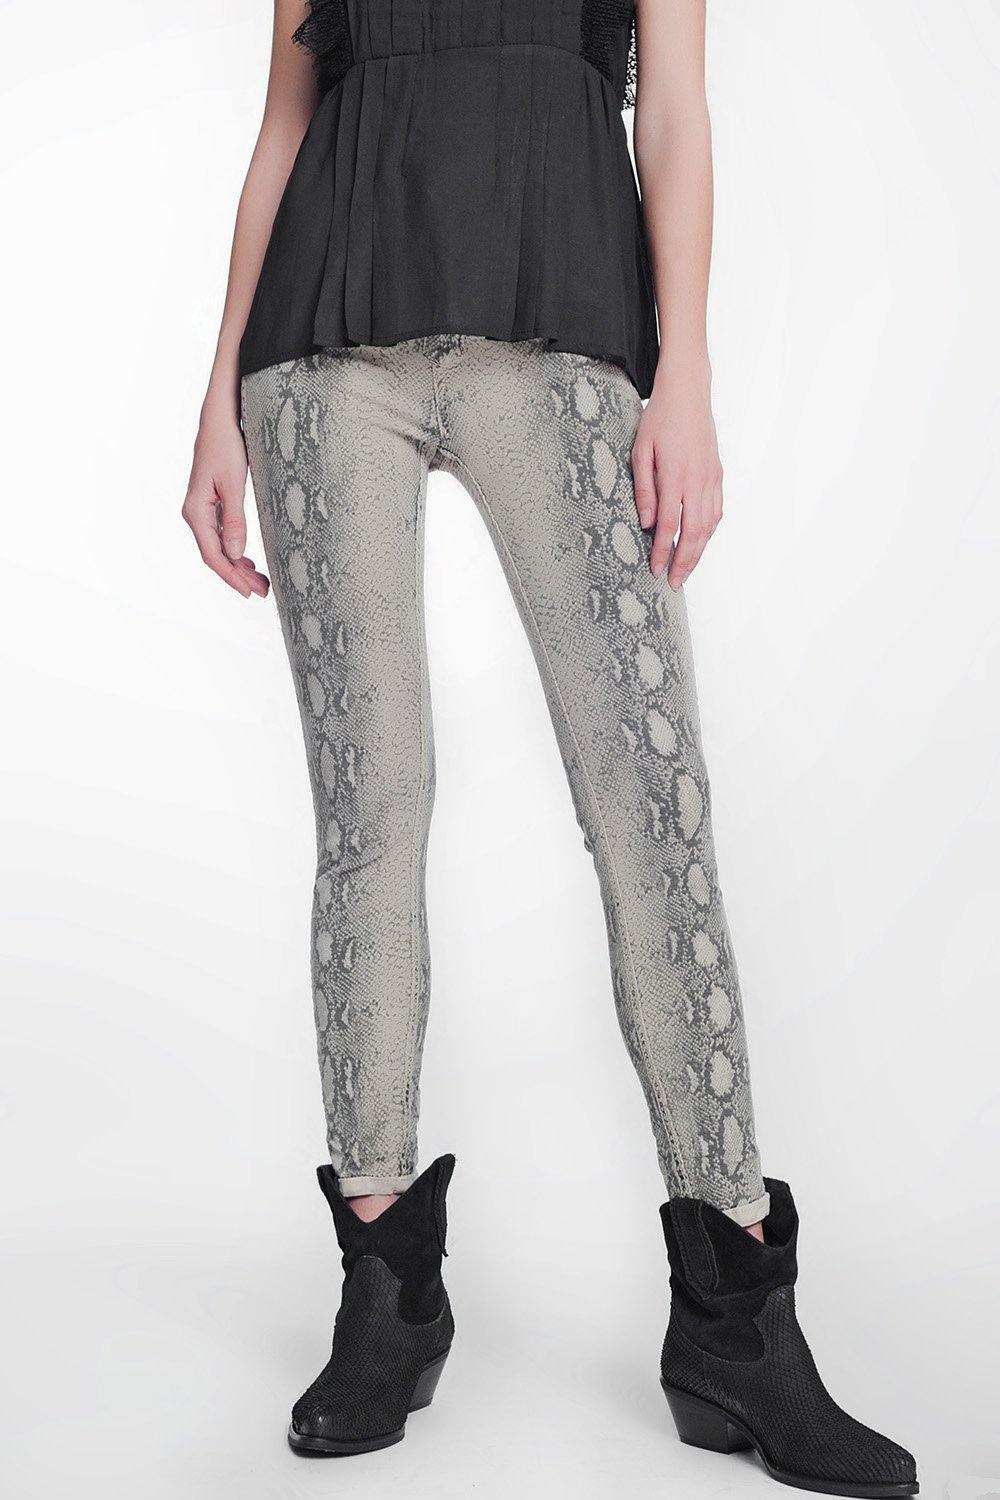 Q2 beige super skinny reversible pants with snake print